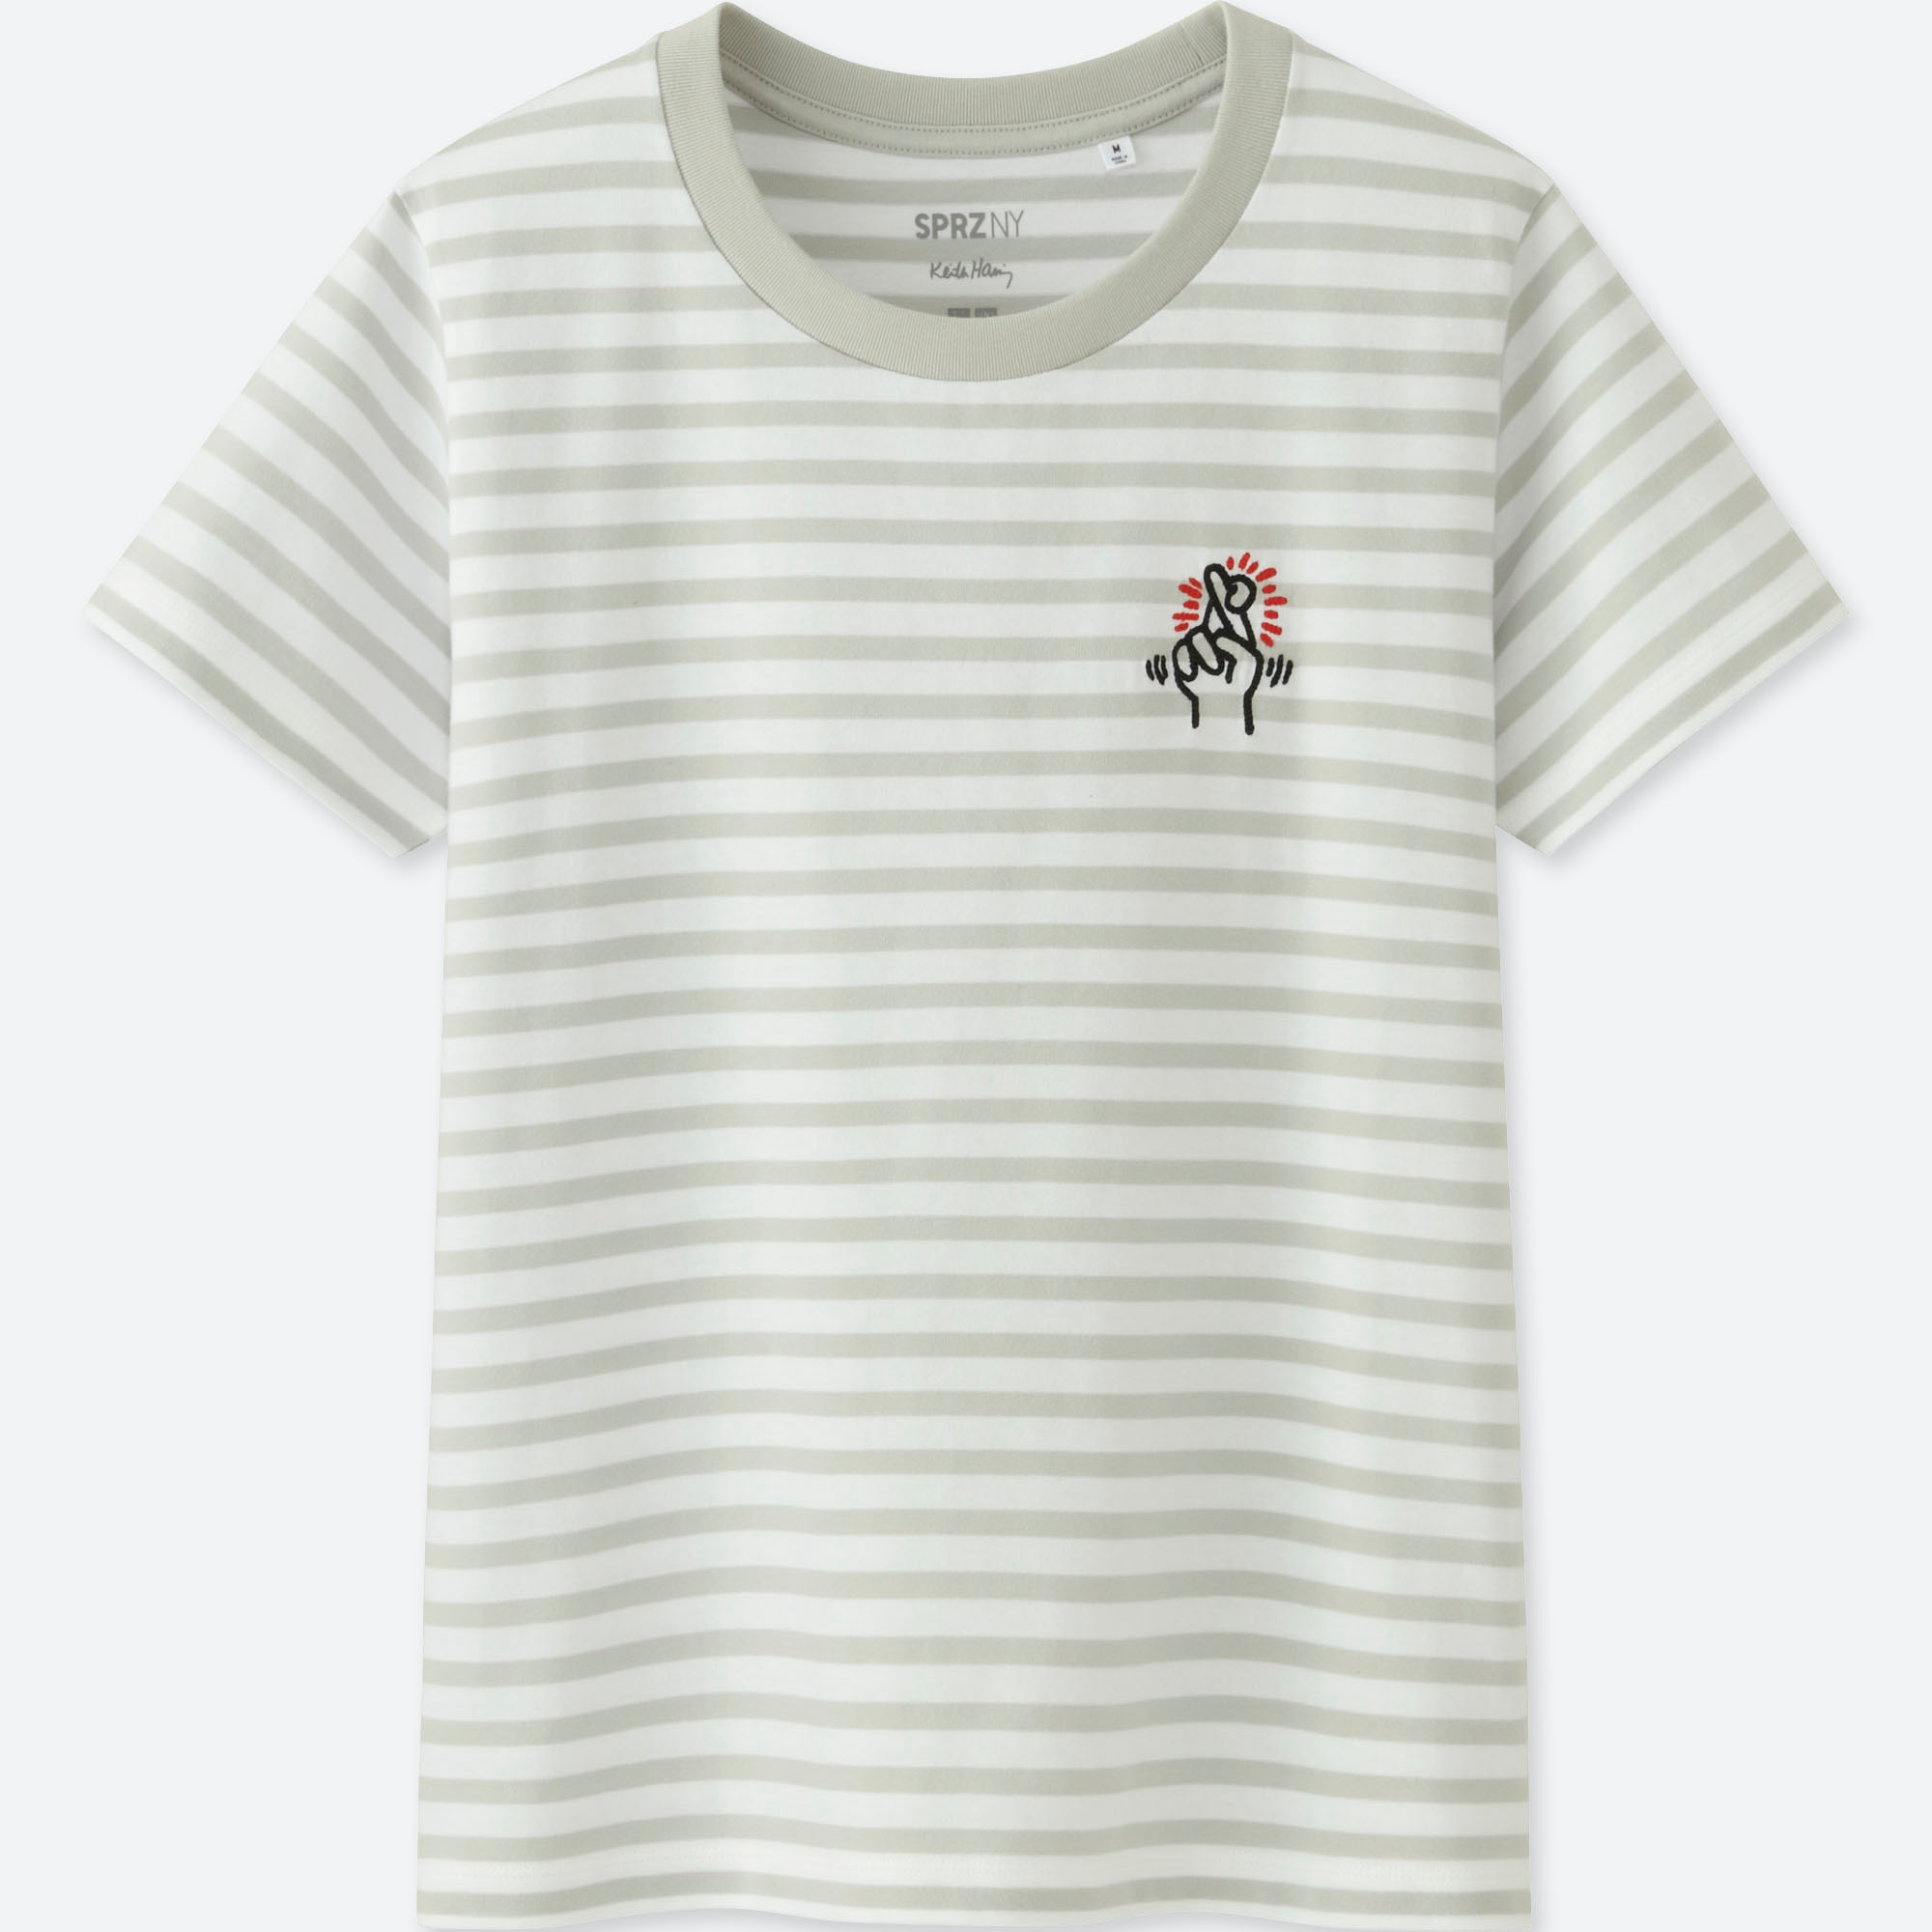 women sprz ny keith haring graphic t shirt uniqlo us. Black Bedroom Furniture Sets. Home Design Ideas